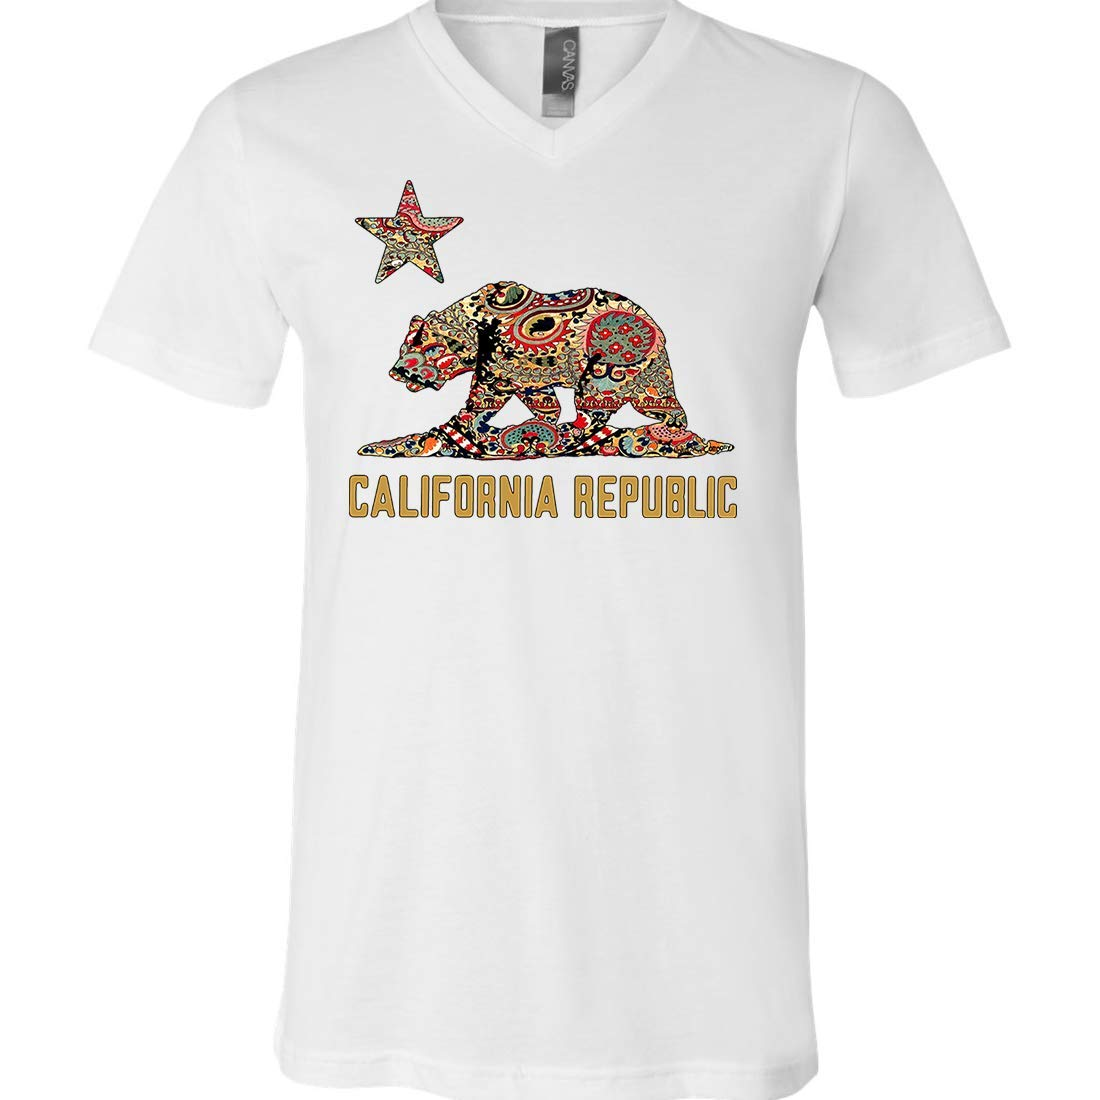 Dolphin Shirt Co California Republic Paisley Bear Asst Colors Vneck